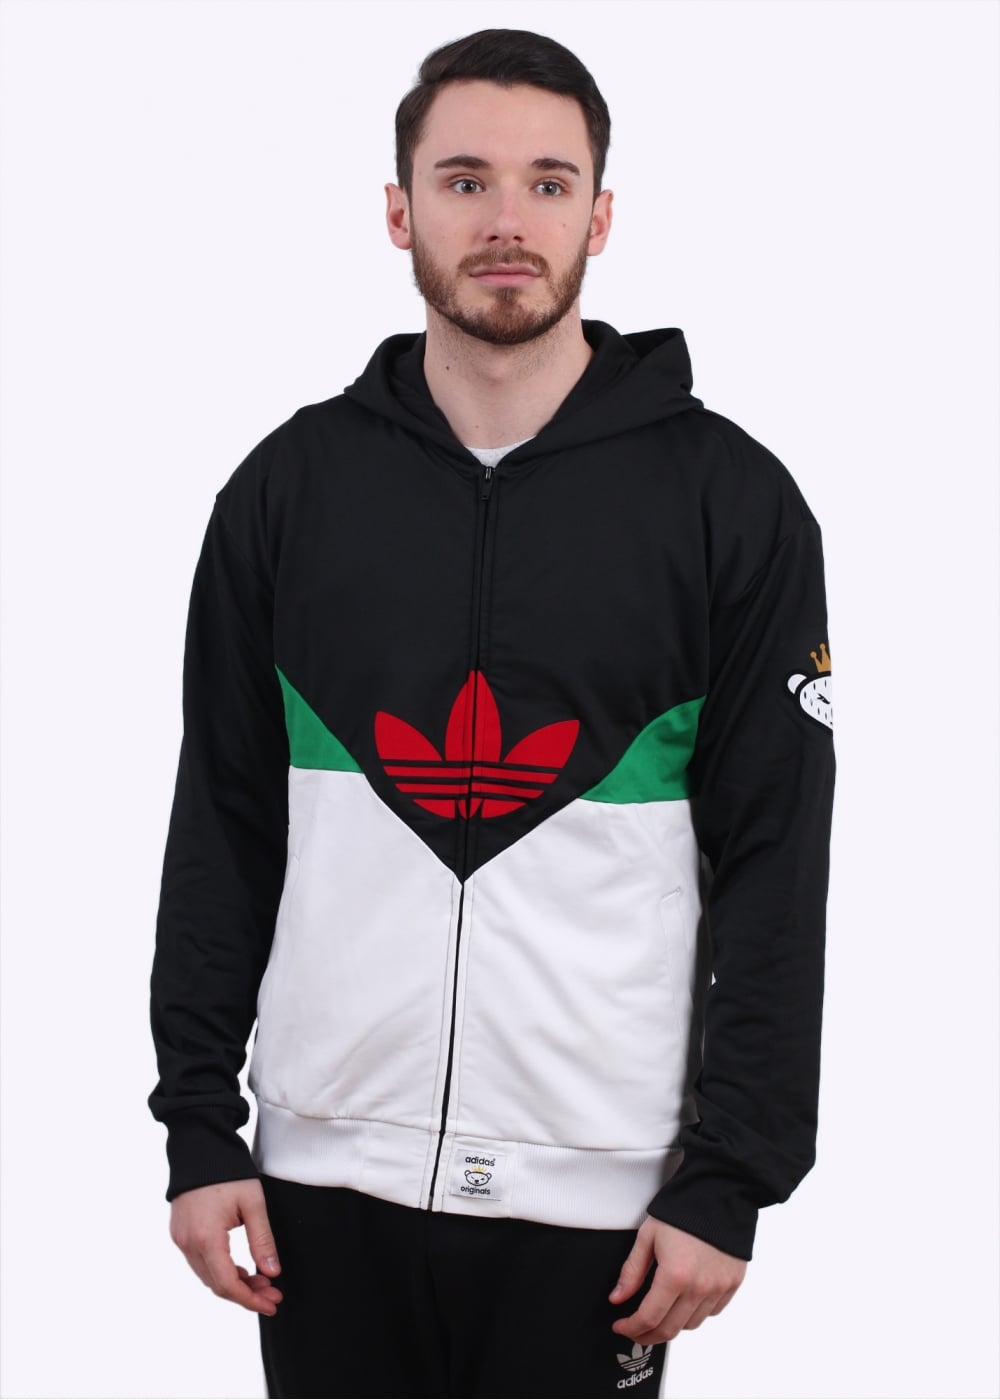 b509e24b adidas Originals x Nigo Colorado FZ Hoody - Black / Green